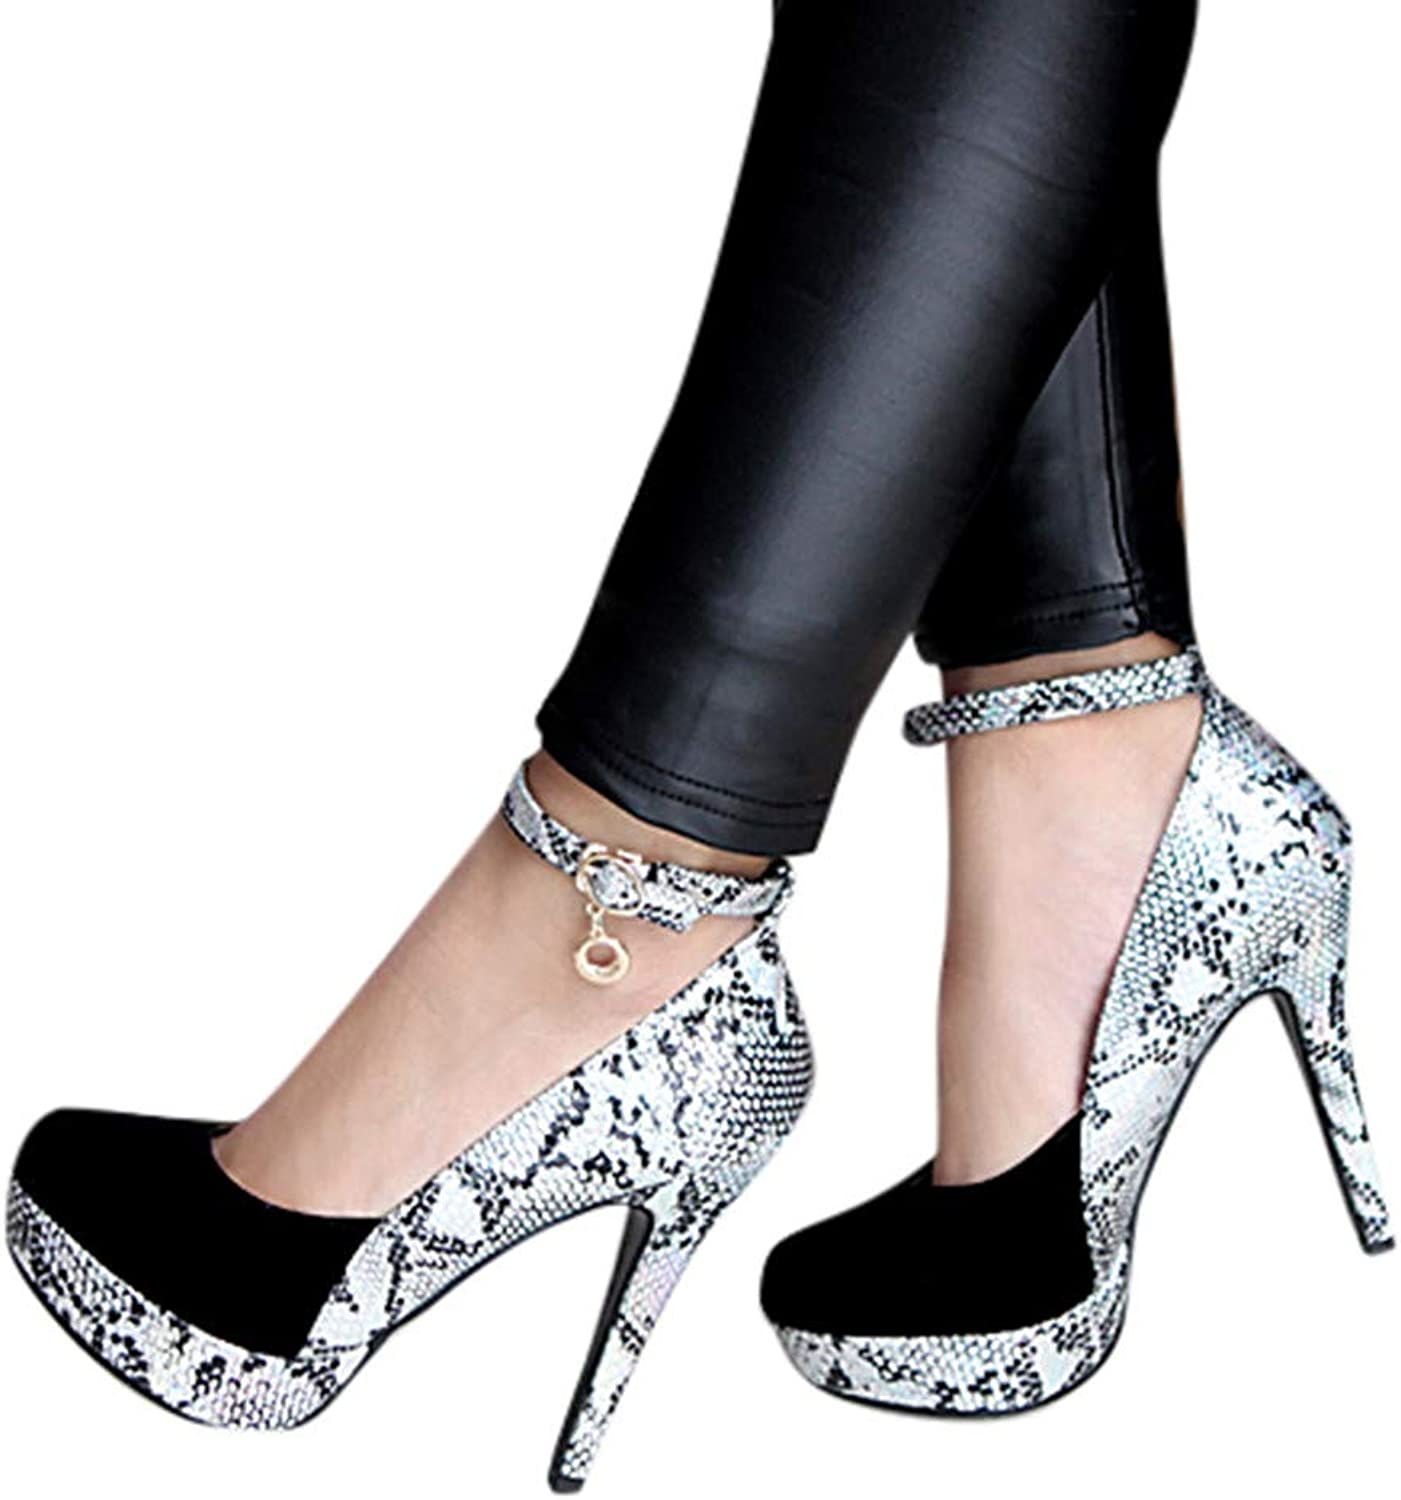 Sexy Women's Silky Snakeskin Texture A-Line Buckle-Strap Super-High Heels Leather Earings Pants Stiletto shoes